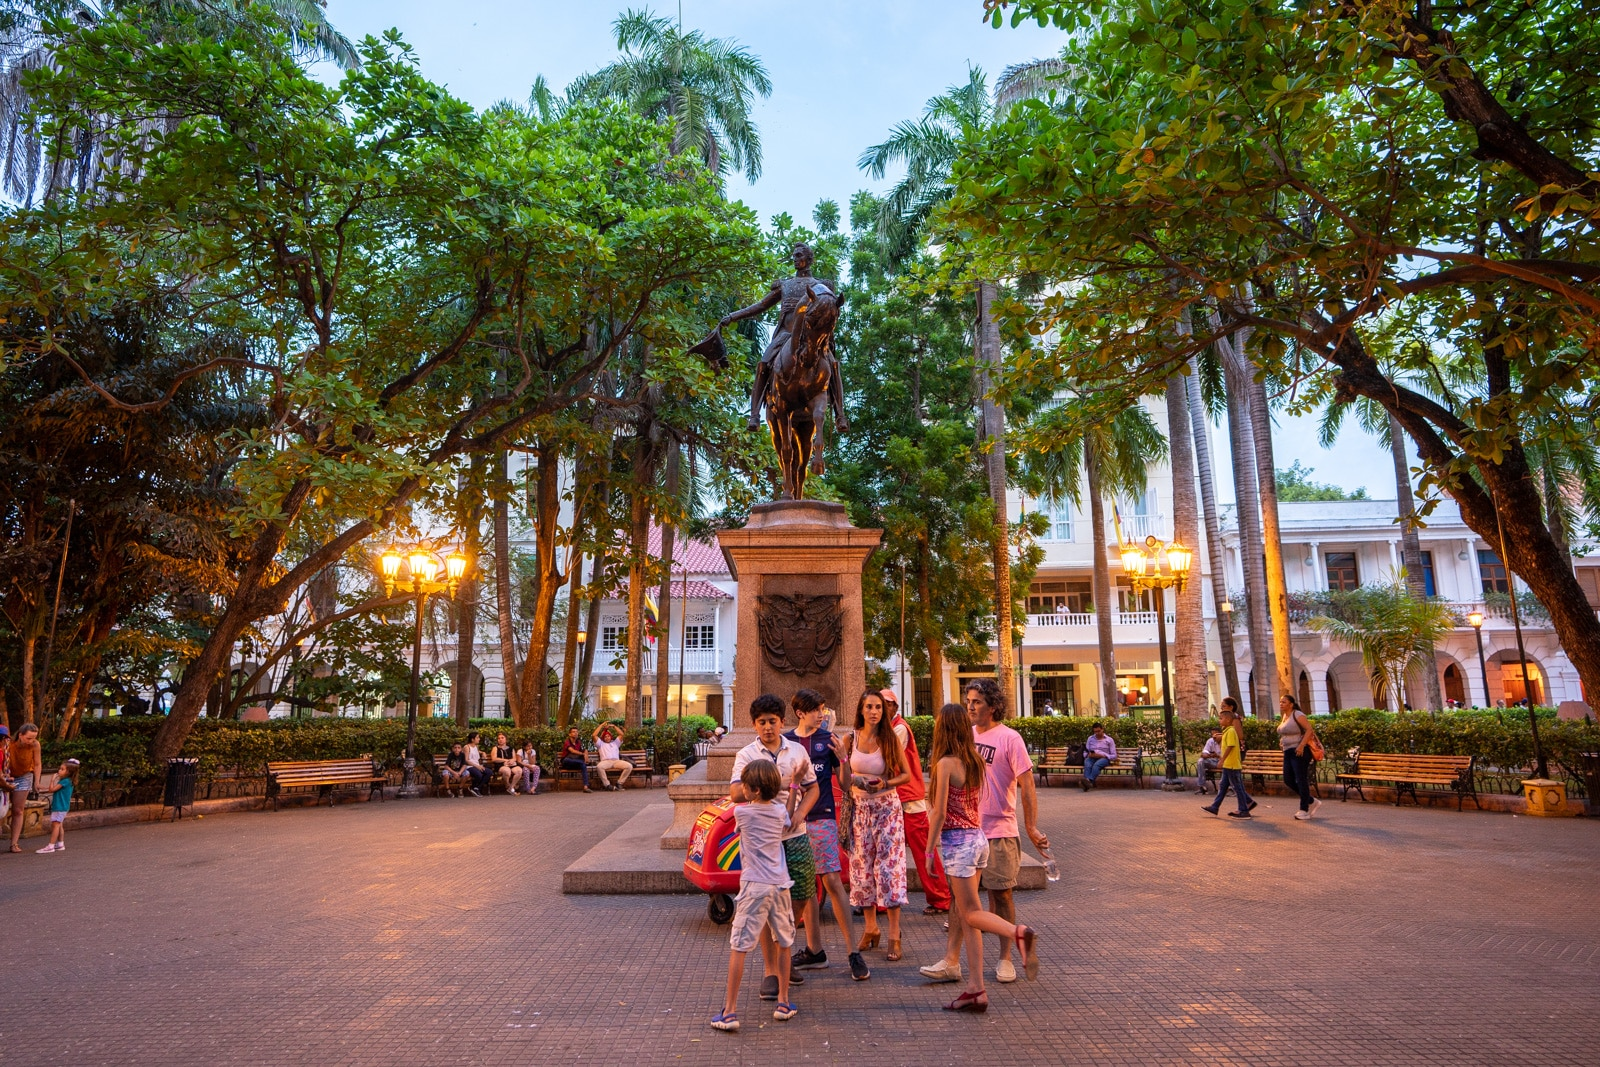 Reverse culture shock from long-term travel - A public square in the evening in Cartagena, Colombia - Lost With Purpose travel blog